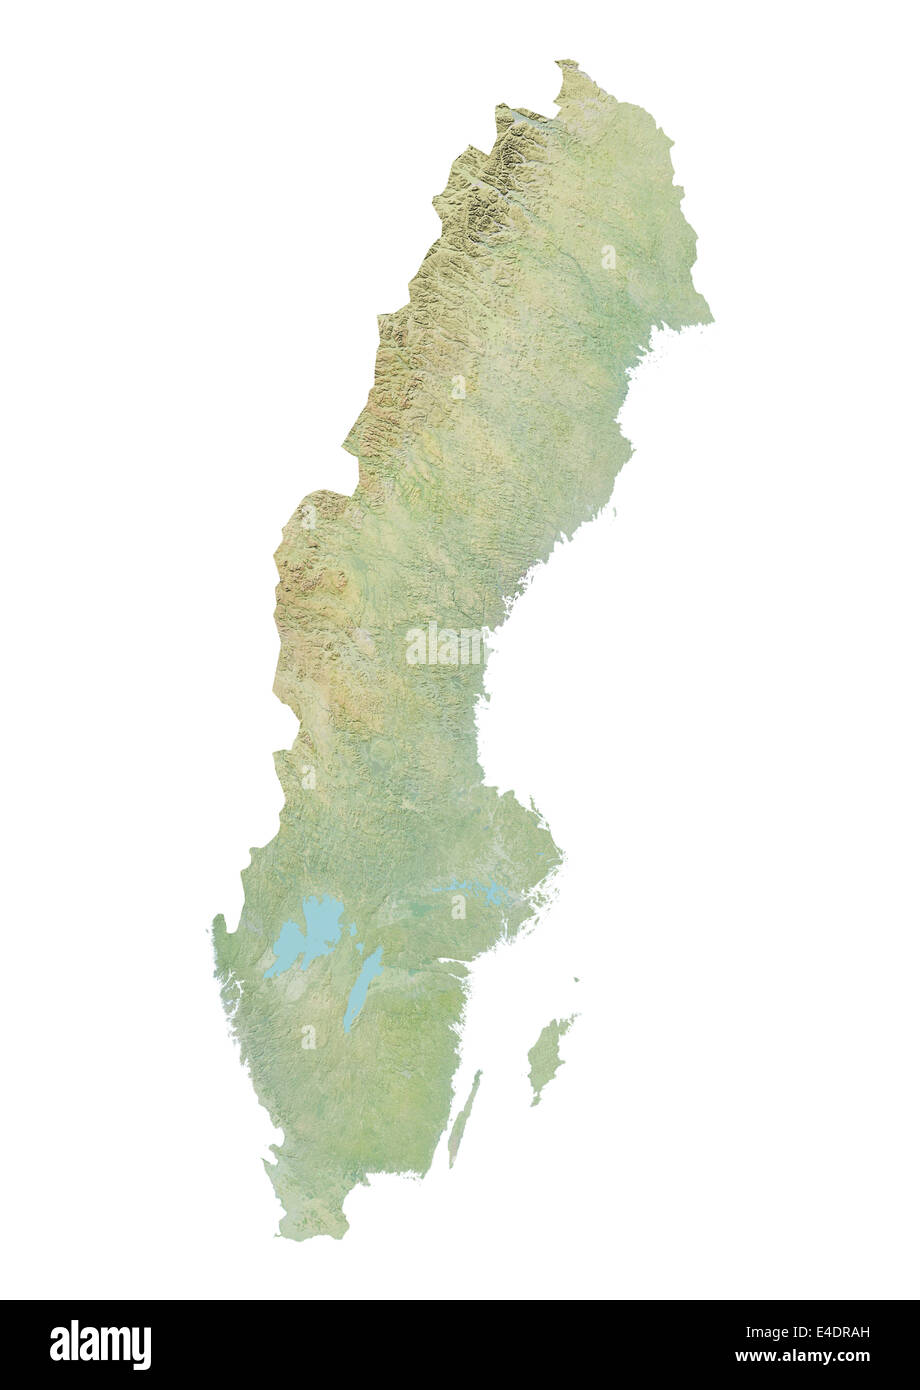 Sweden Relief Map Stock Photo Royalty Free Image Alamy - Sweden relief map